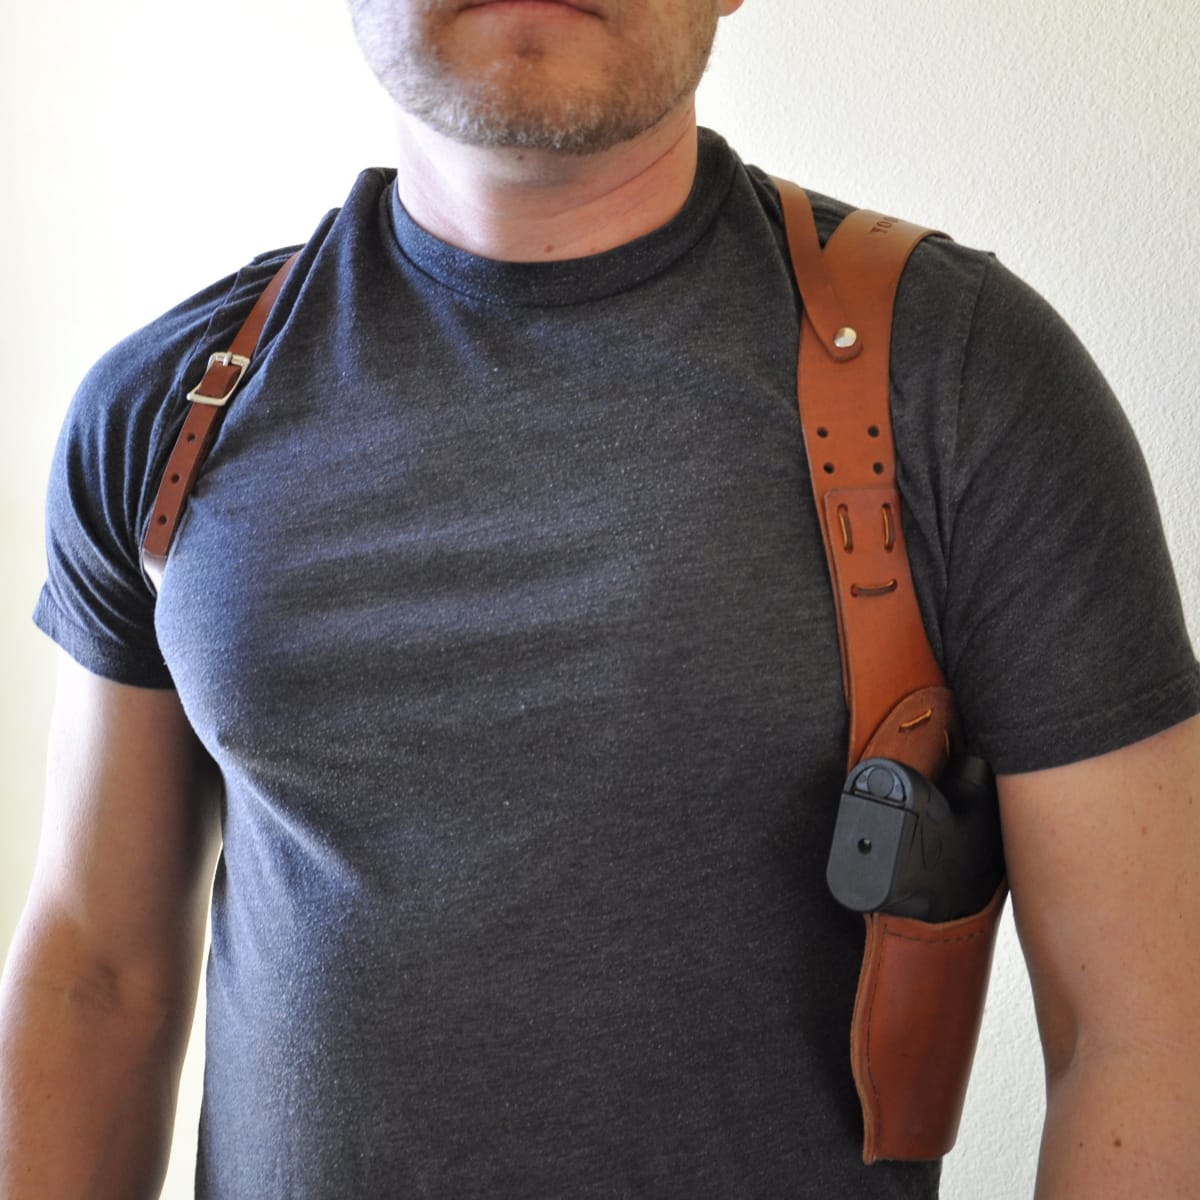 Man with pistol in shoulder holster